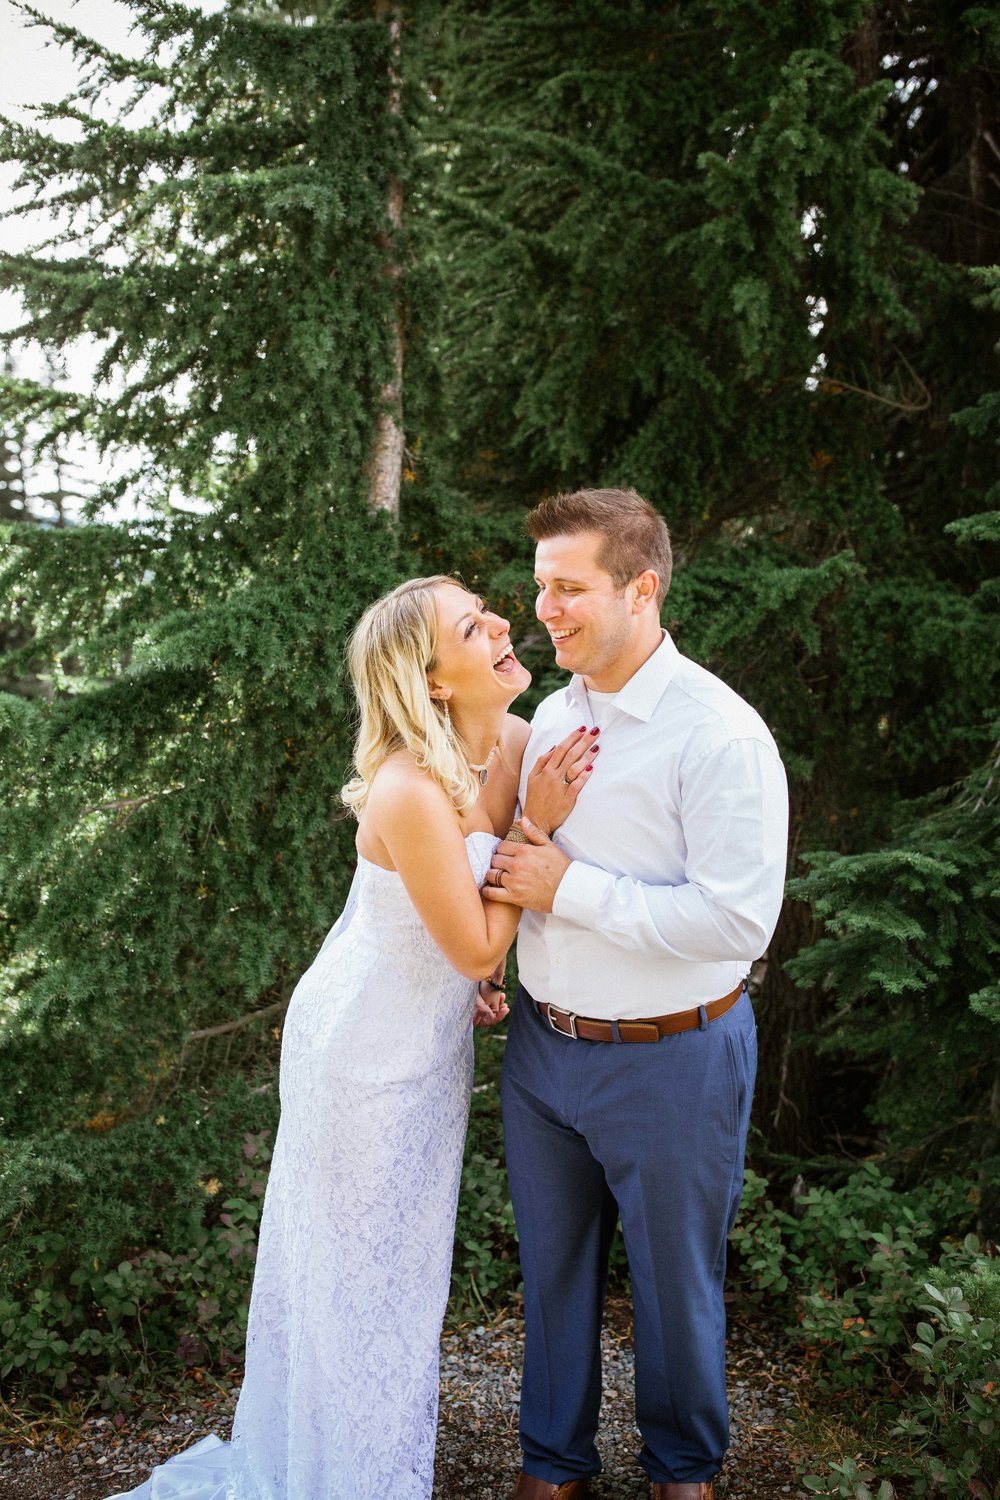 Ashley&Josh-Sneak Peek!BLOG-50.jpg